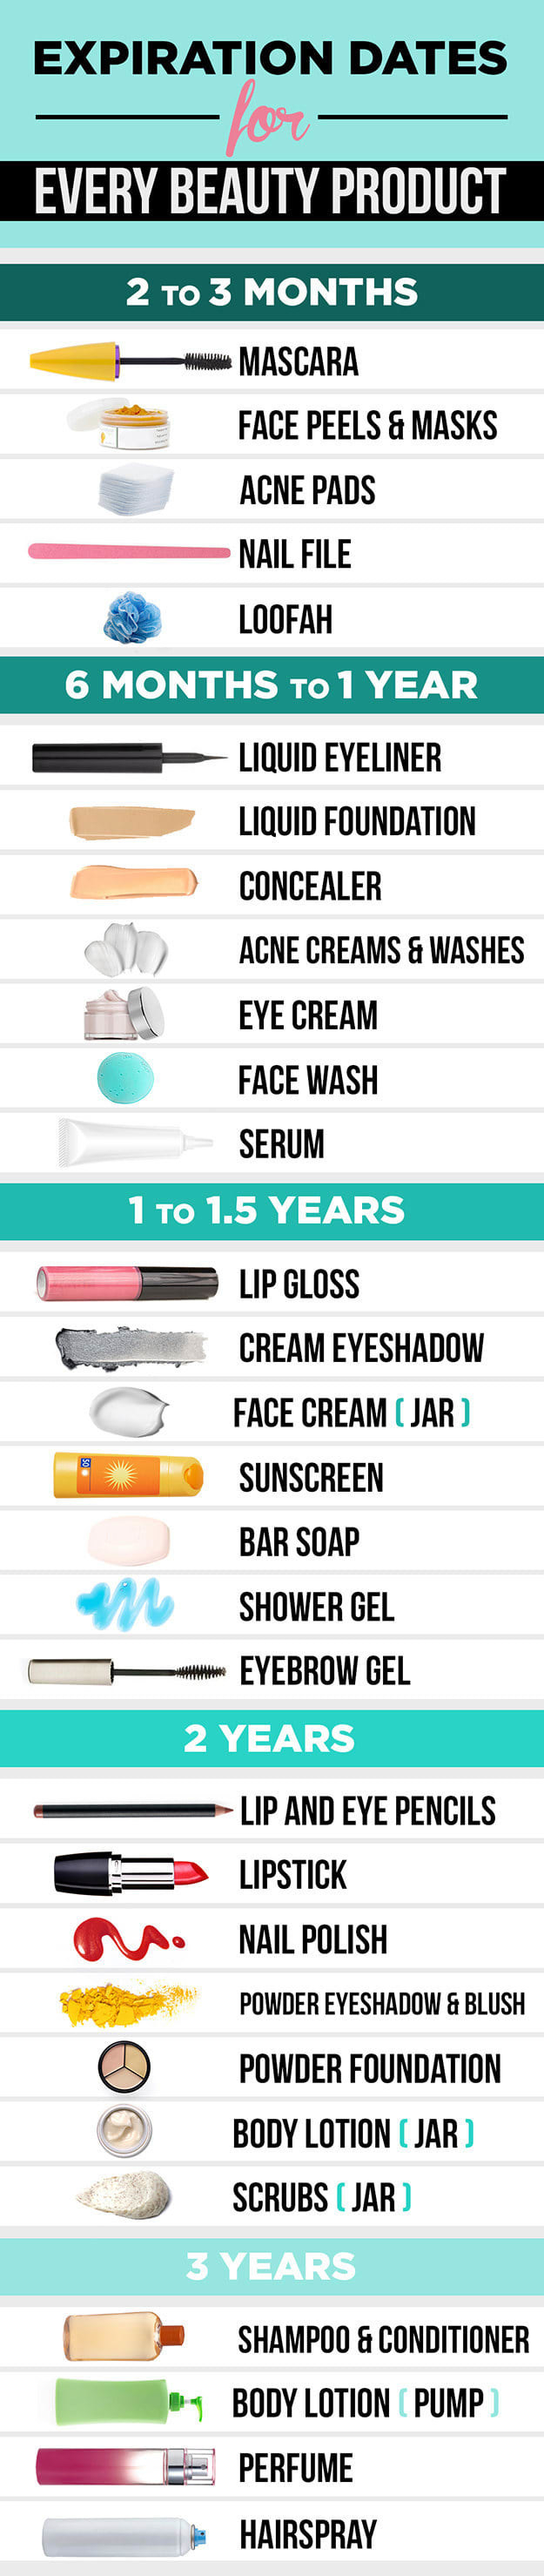 chart of expiration dates for every beauty product